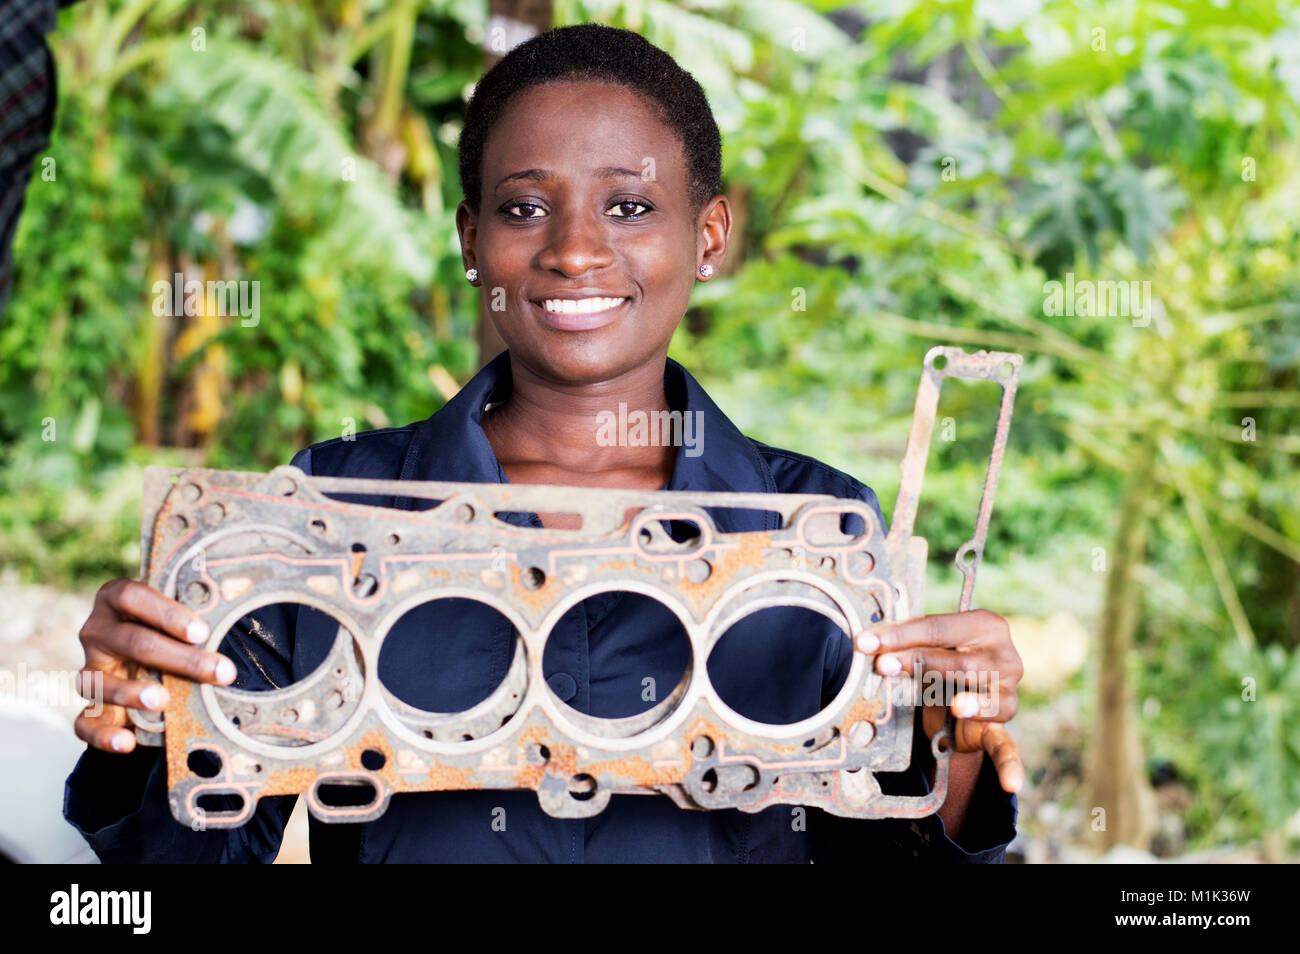 Young woman mechanic holds a damaged car part in her workshop. - Stock Image